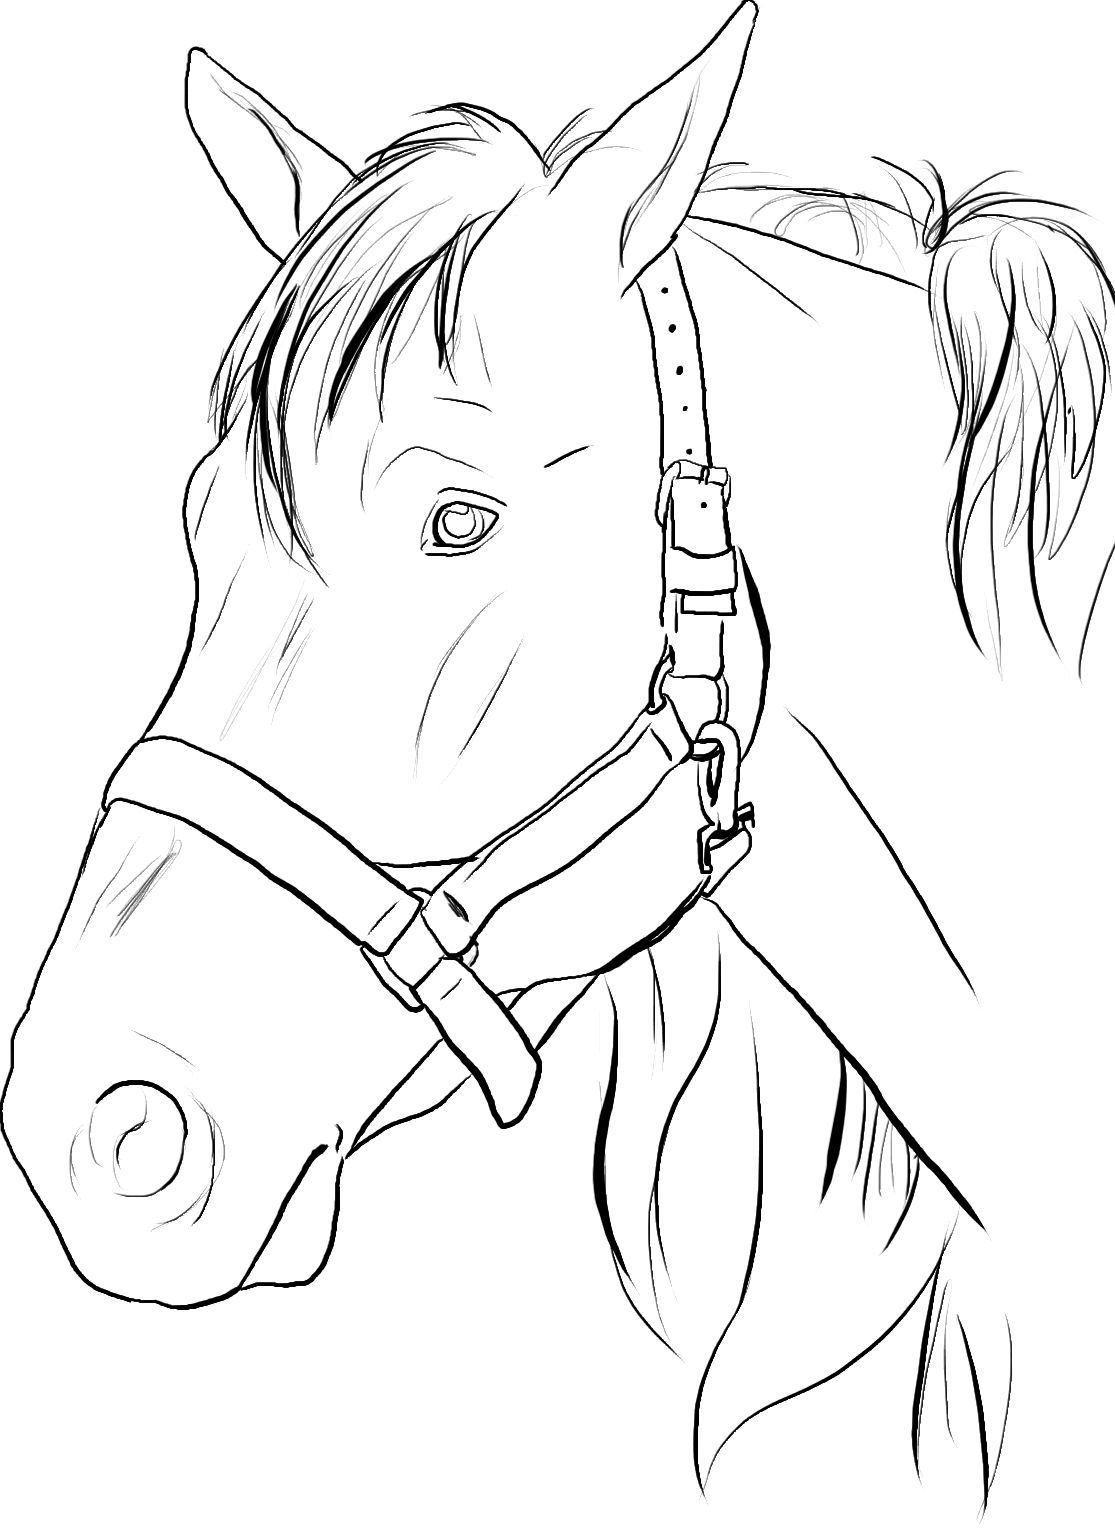 Horse Head Coloring Pages Jpg 1115 1536 Horse Coloring Pages